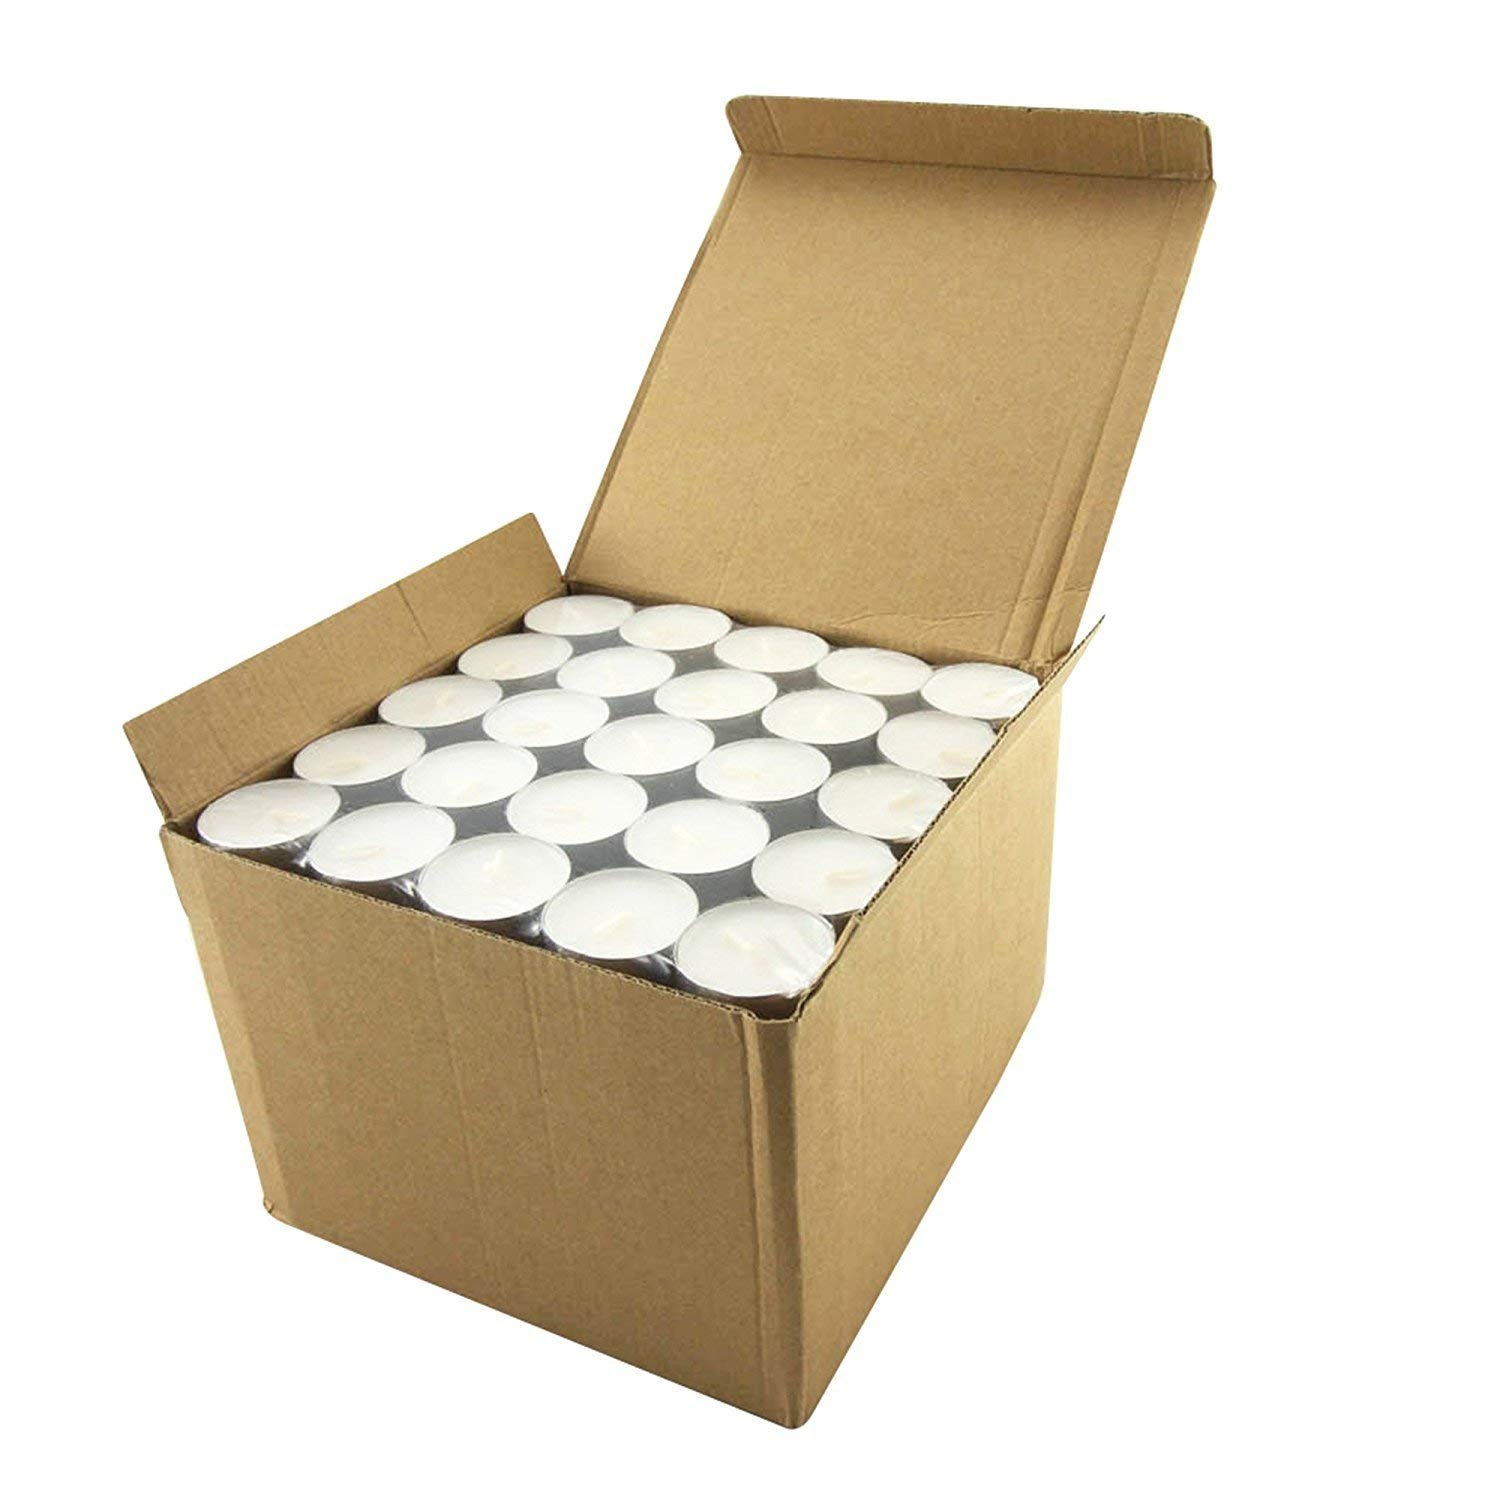 Stonebriar 6 Hour White Unscented Long Burning Tea Light Candles Bulk 150 Pack